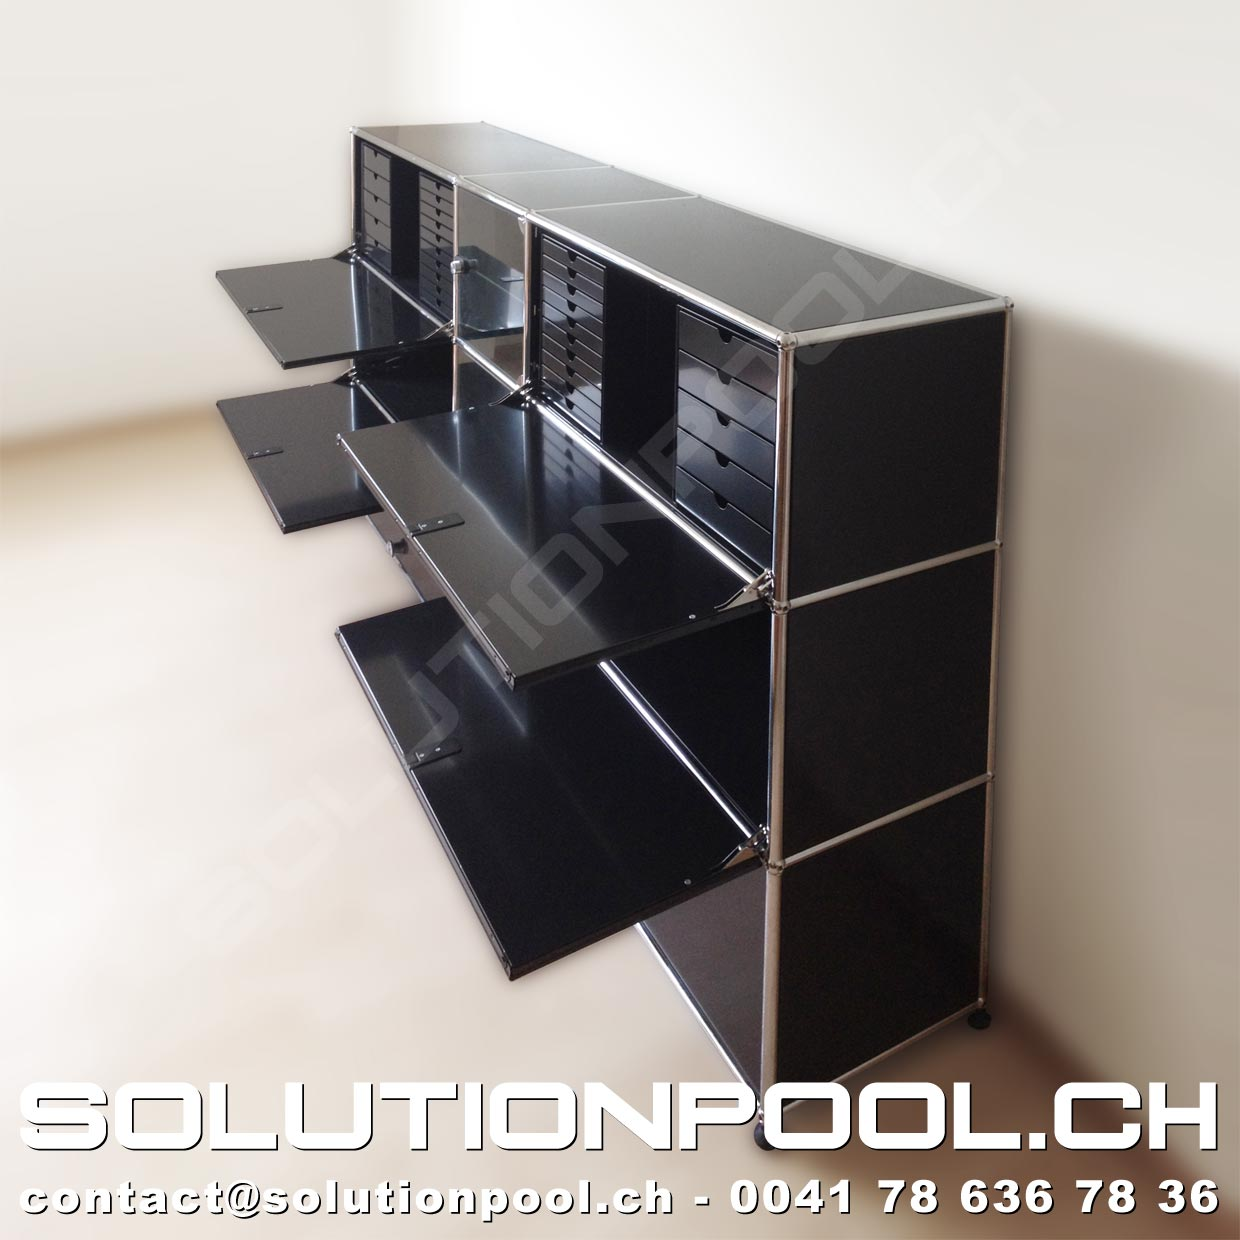 usm highboard schwarz klappen auszuege glastueren inos schubladenstock solutionpool first. Black Bedroom Furniture Sets. Home Design Ideas